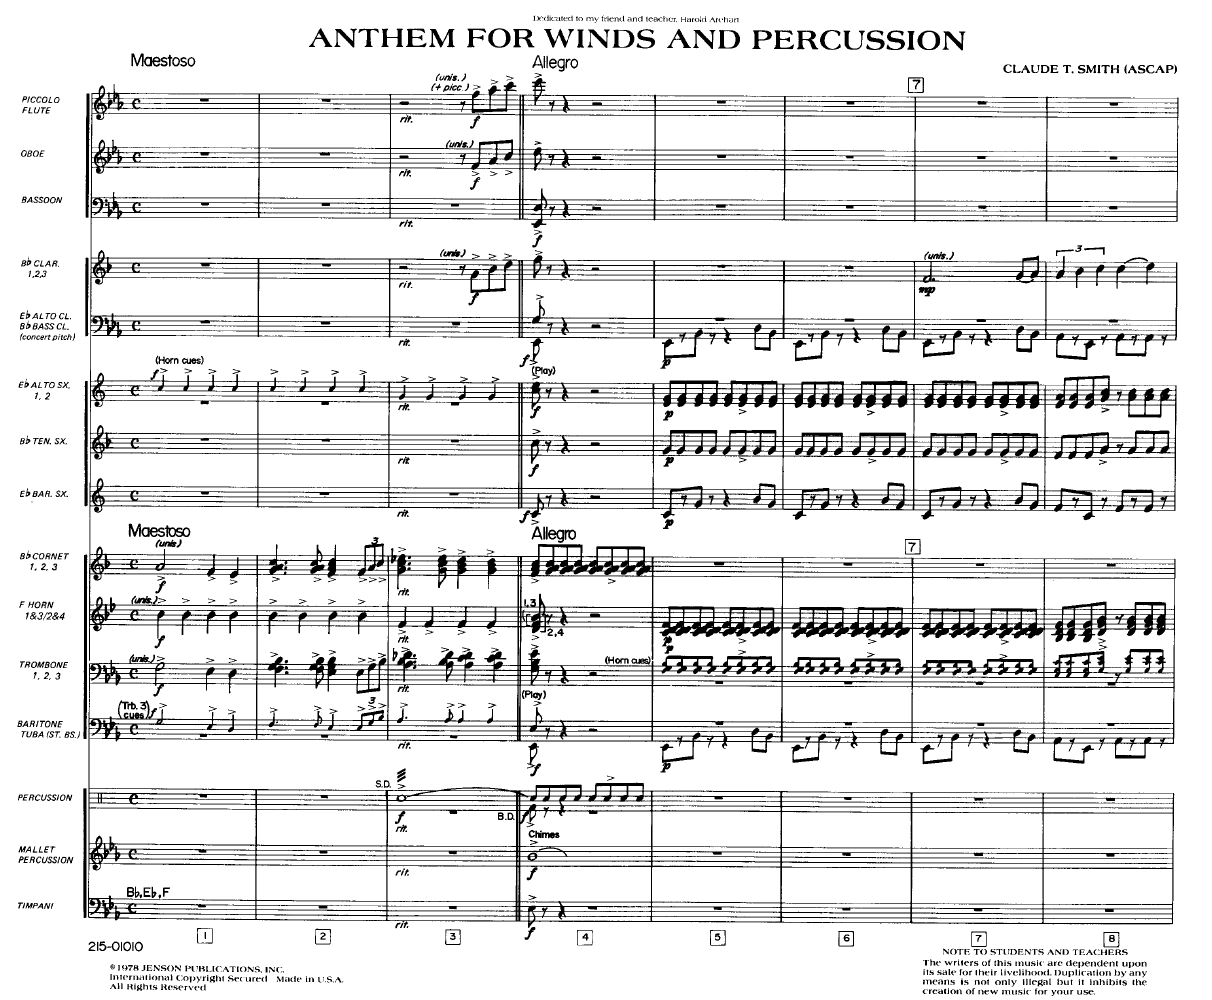 Anthem for Winds and Percussion Thumbnail